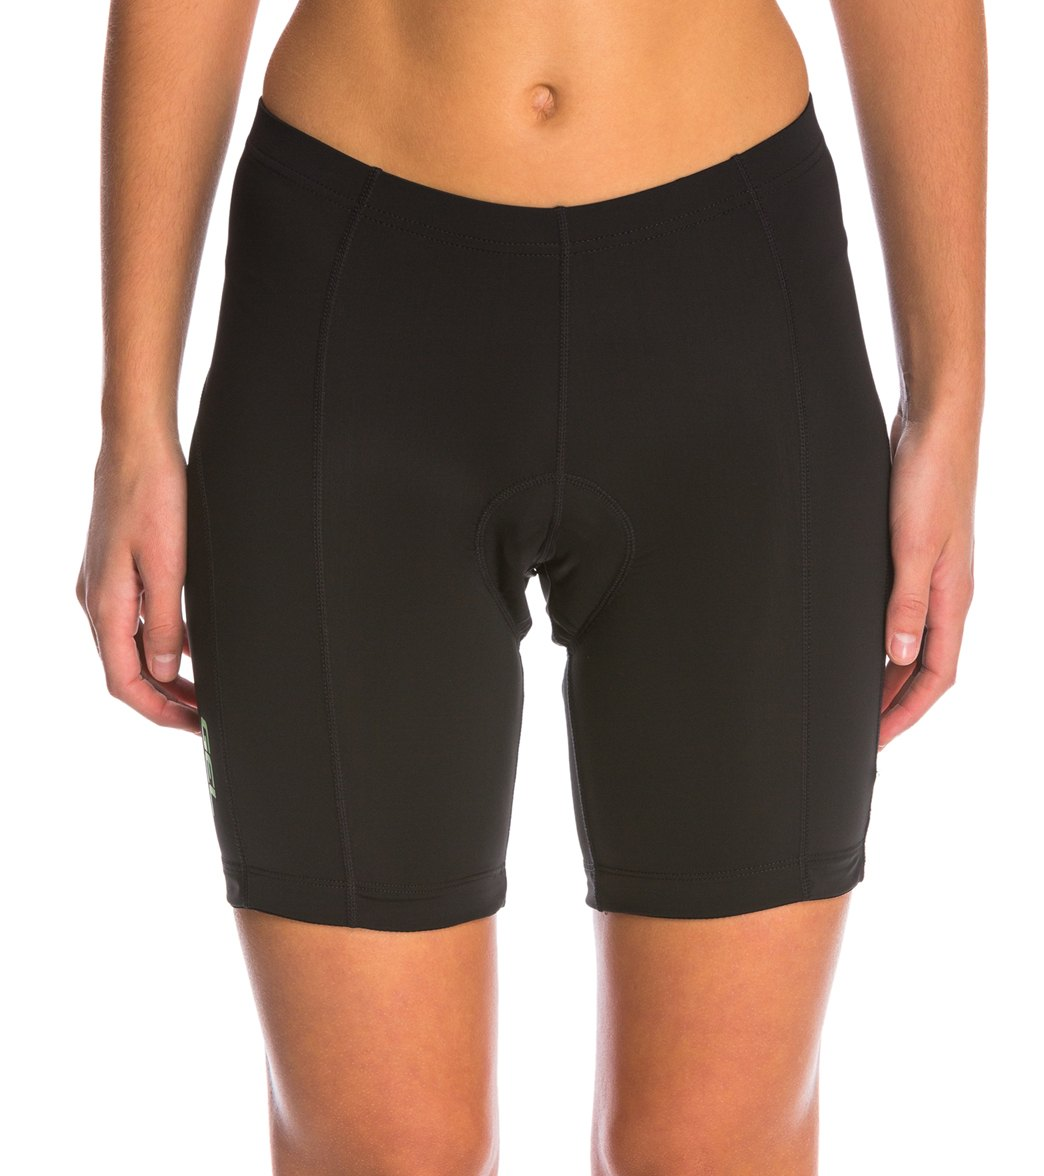 09be0f9ae8e99 Canari Women's Pro Gel Cycling Shorts at SwimOutlet.com - Free Shipping